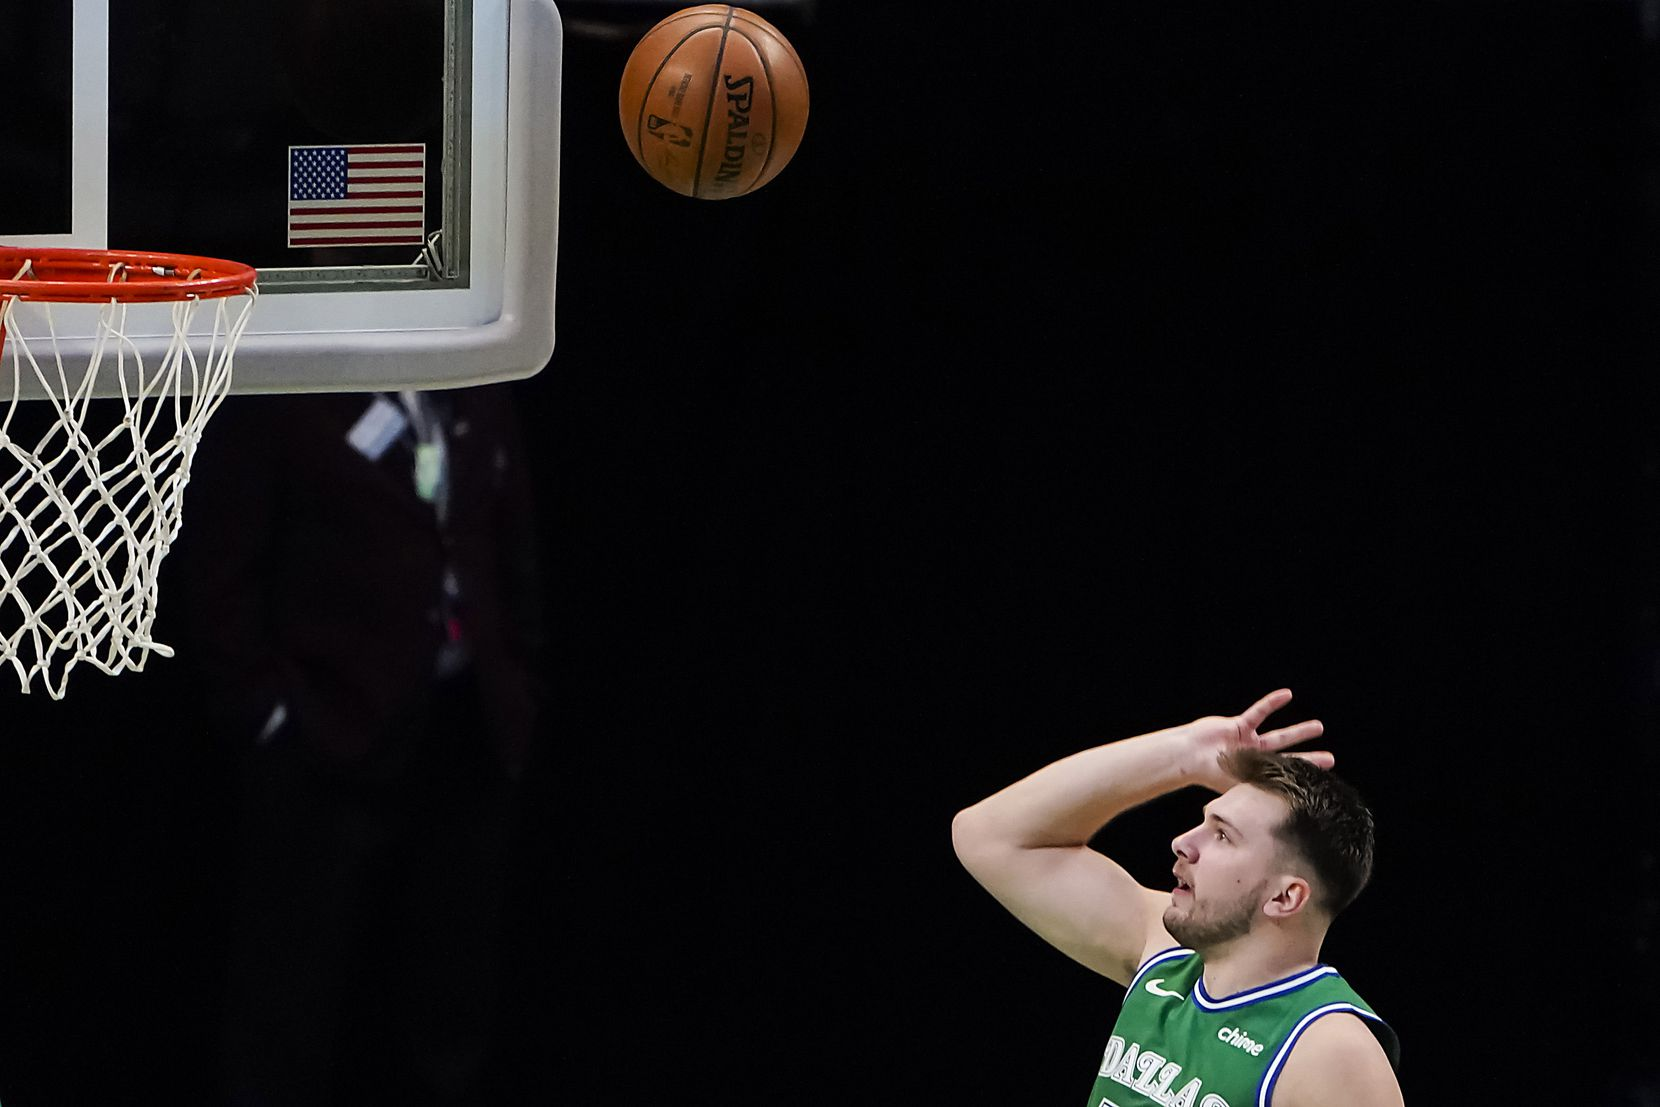 Dallas Mavericks guard Luka Doncic (77) puts up a shot during the first quarter of an NBA basketball game against the LA Clippers at American Airlines Center on Wednesday, March 17, 2021, in Dallas.